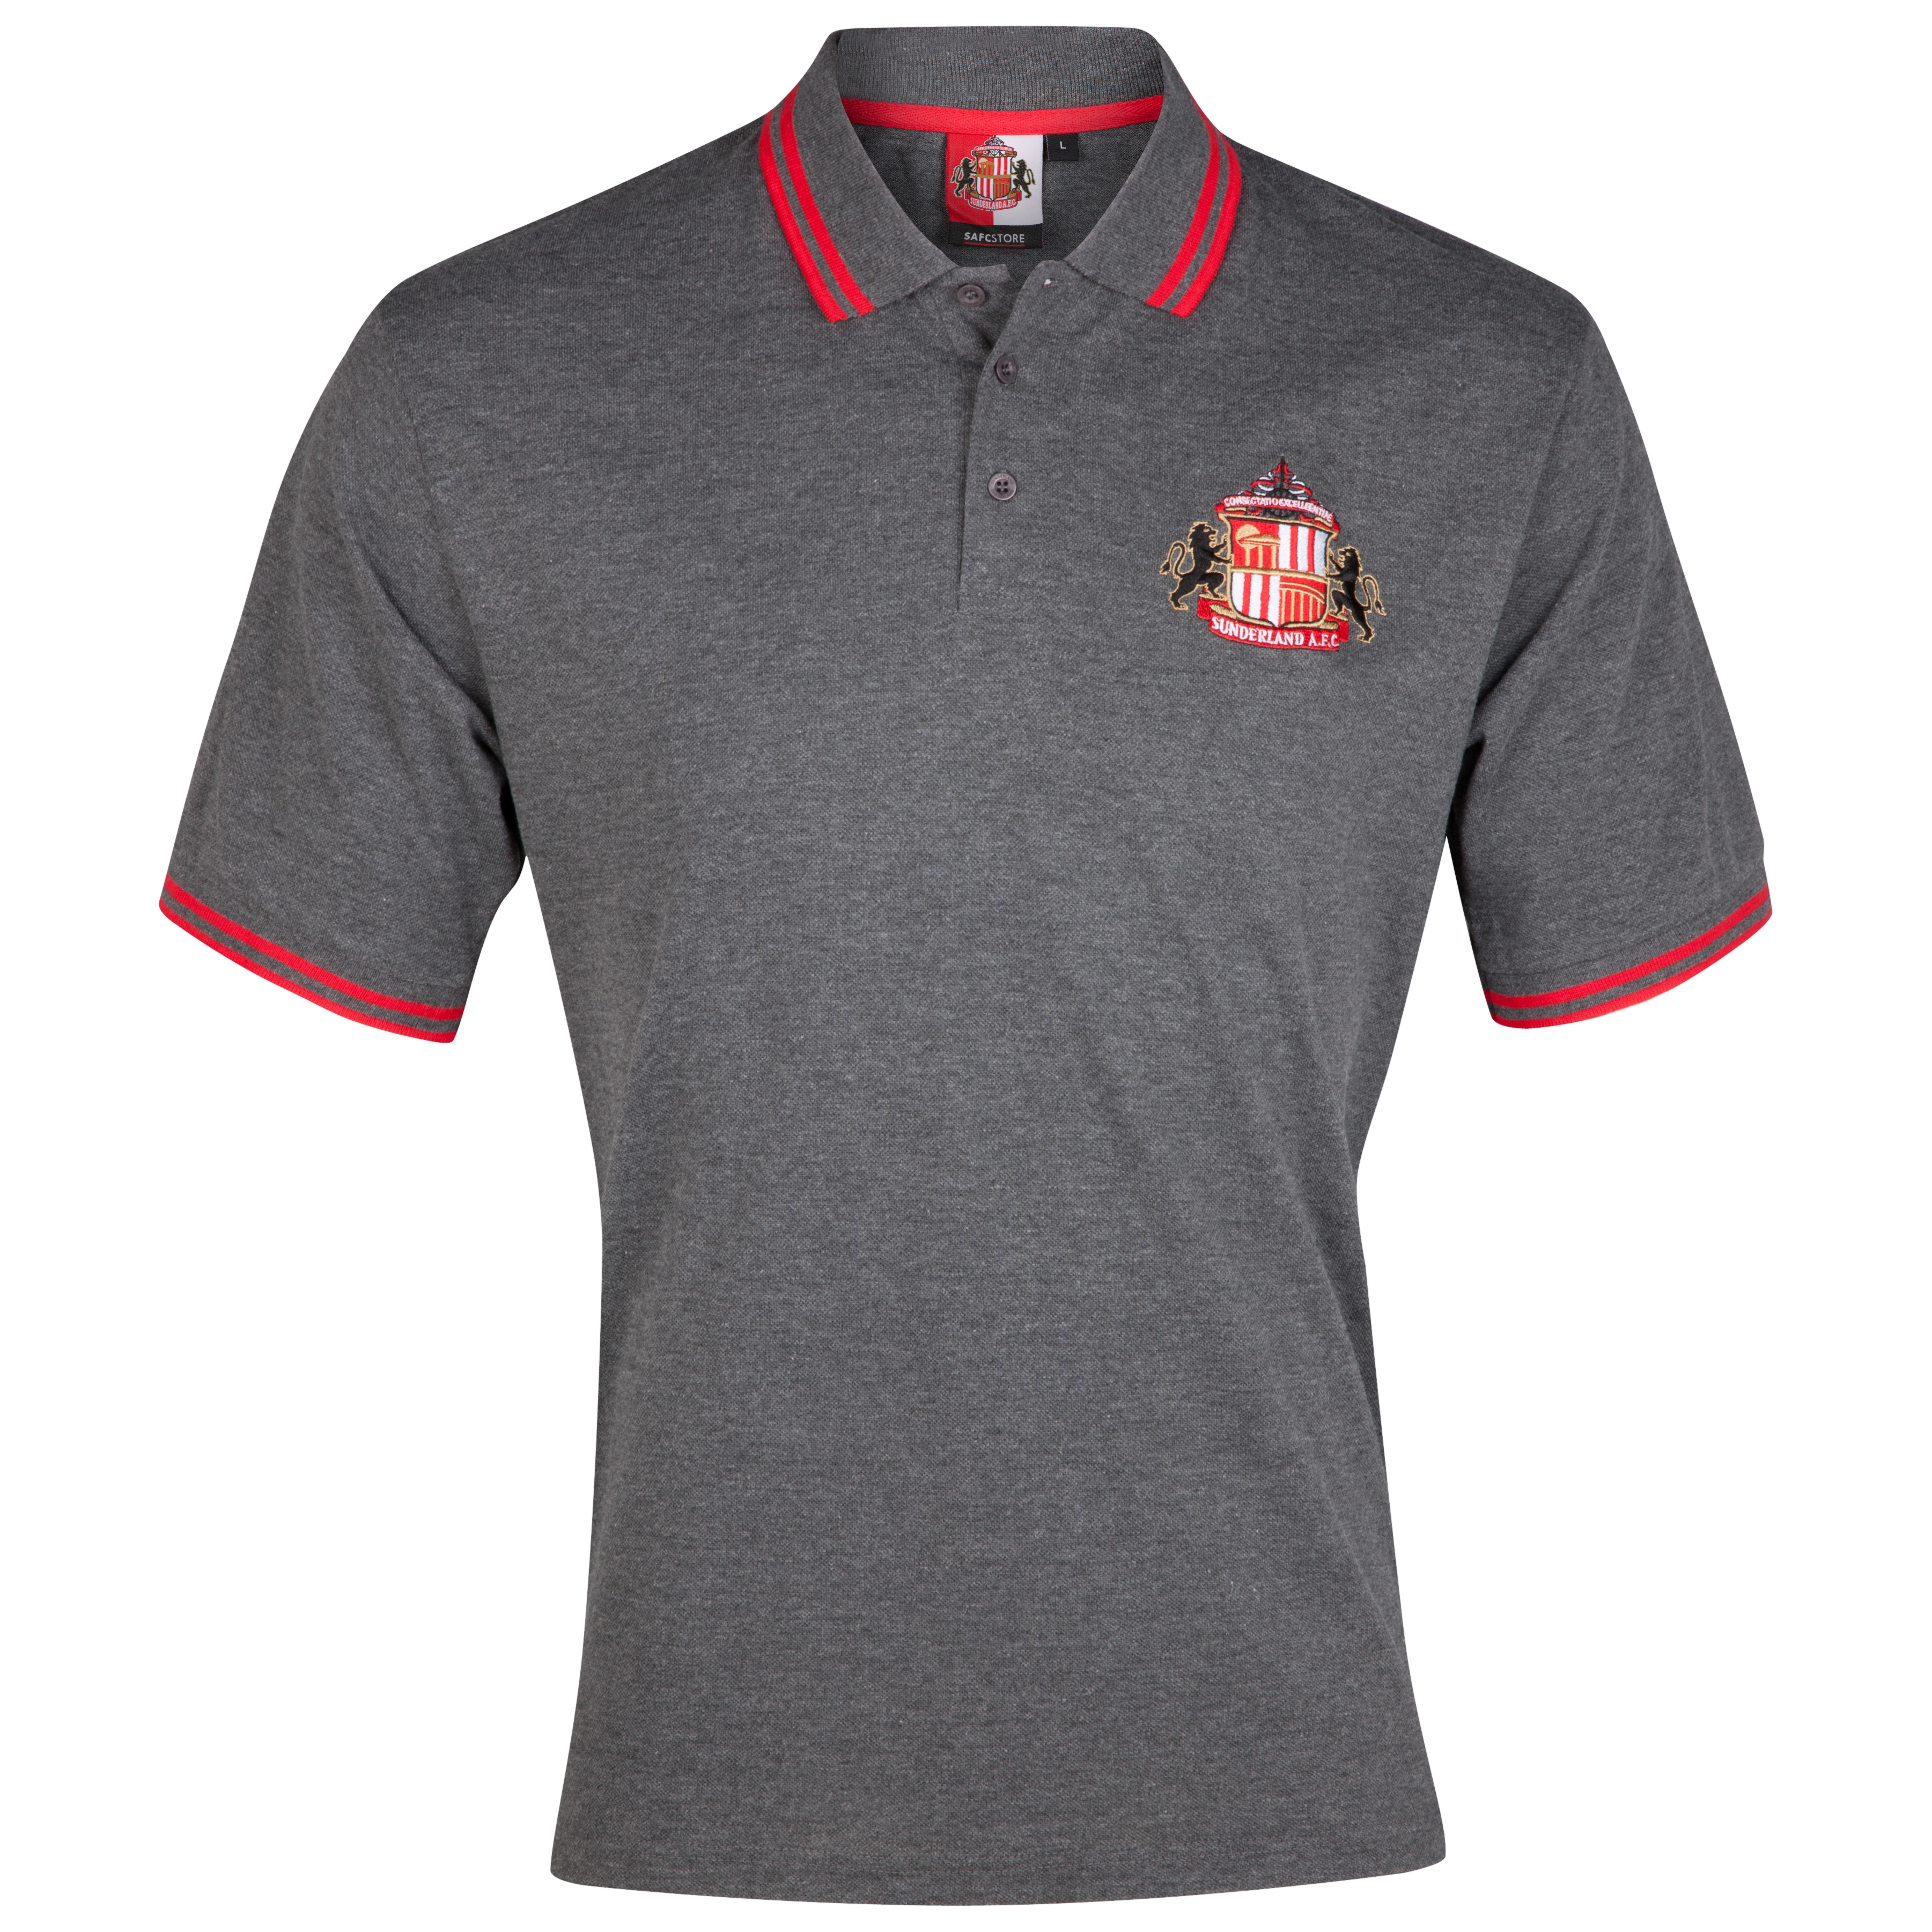 Sunderland Essential Epic Crest Polo Top - Charcoal Marl - Older Boys